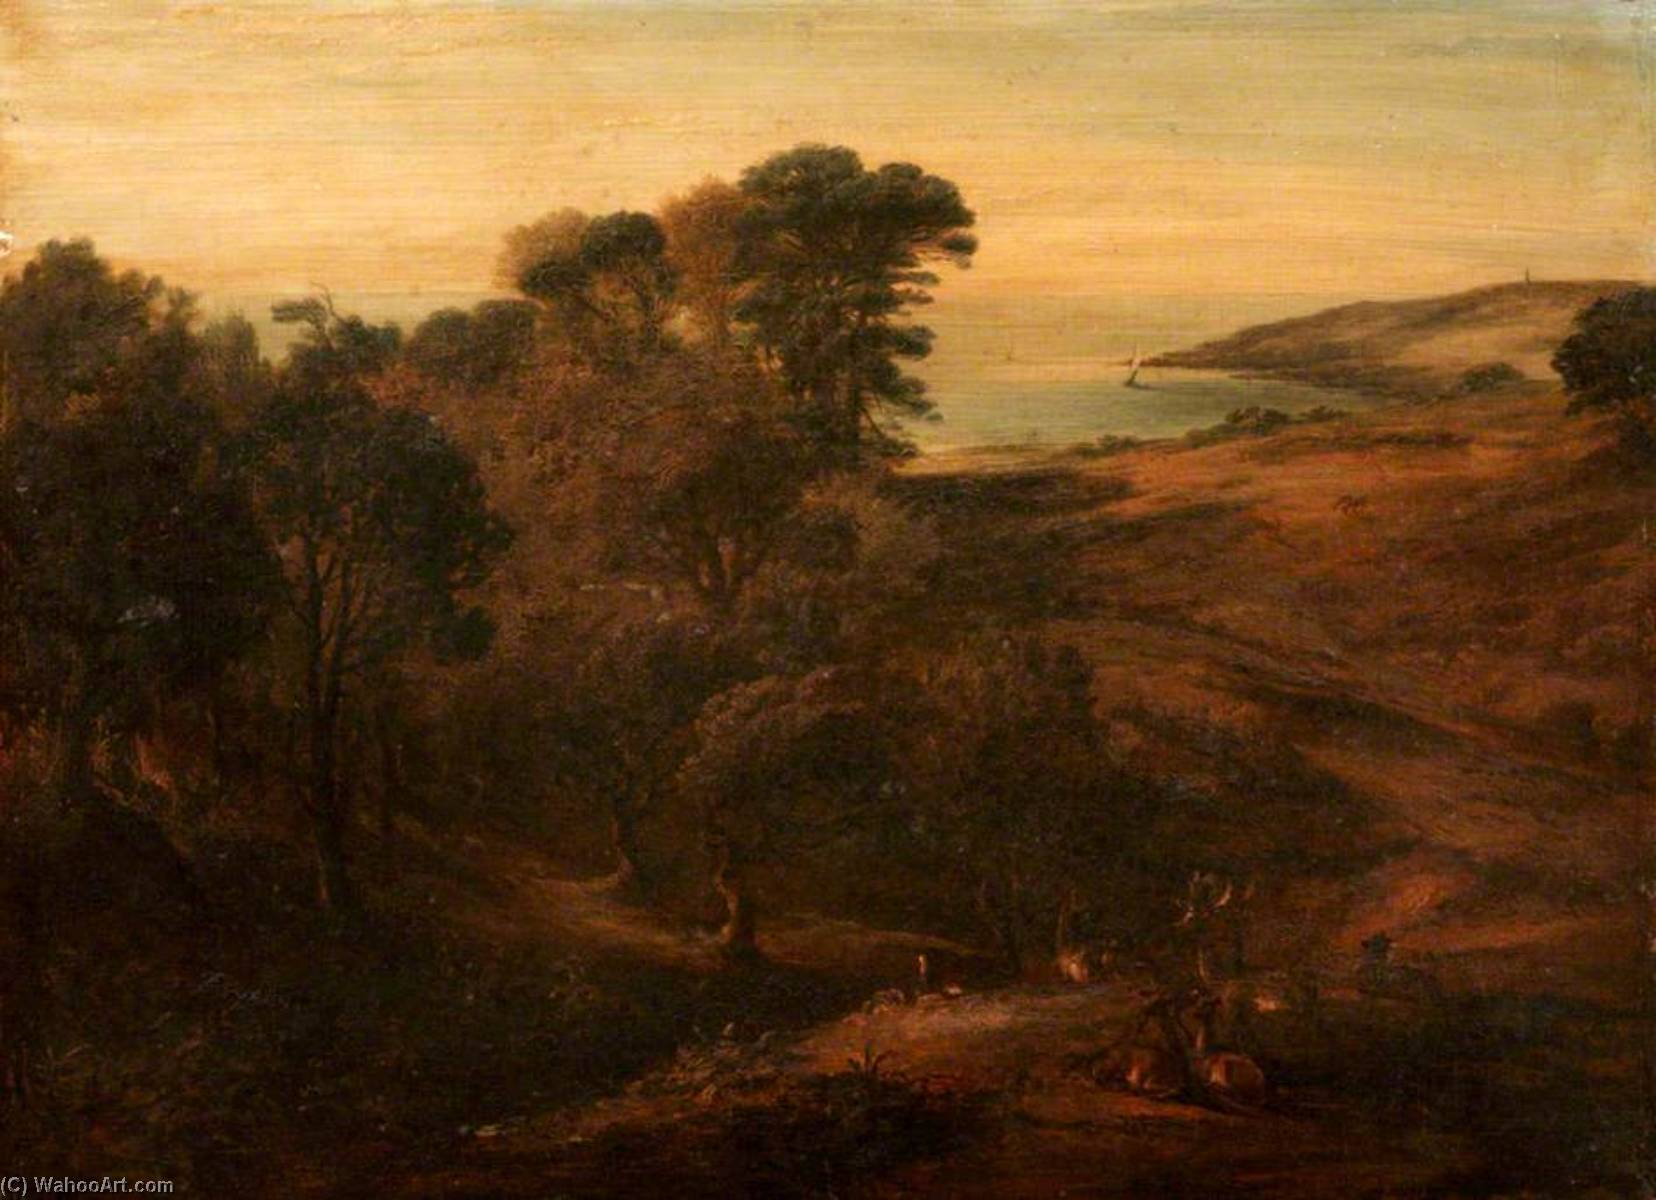 Order Art Reproductions | Penlee Point and Cawsand Bay, 1829 by Ambrose Bowden Johns (1776-1858) | WahooArt.com